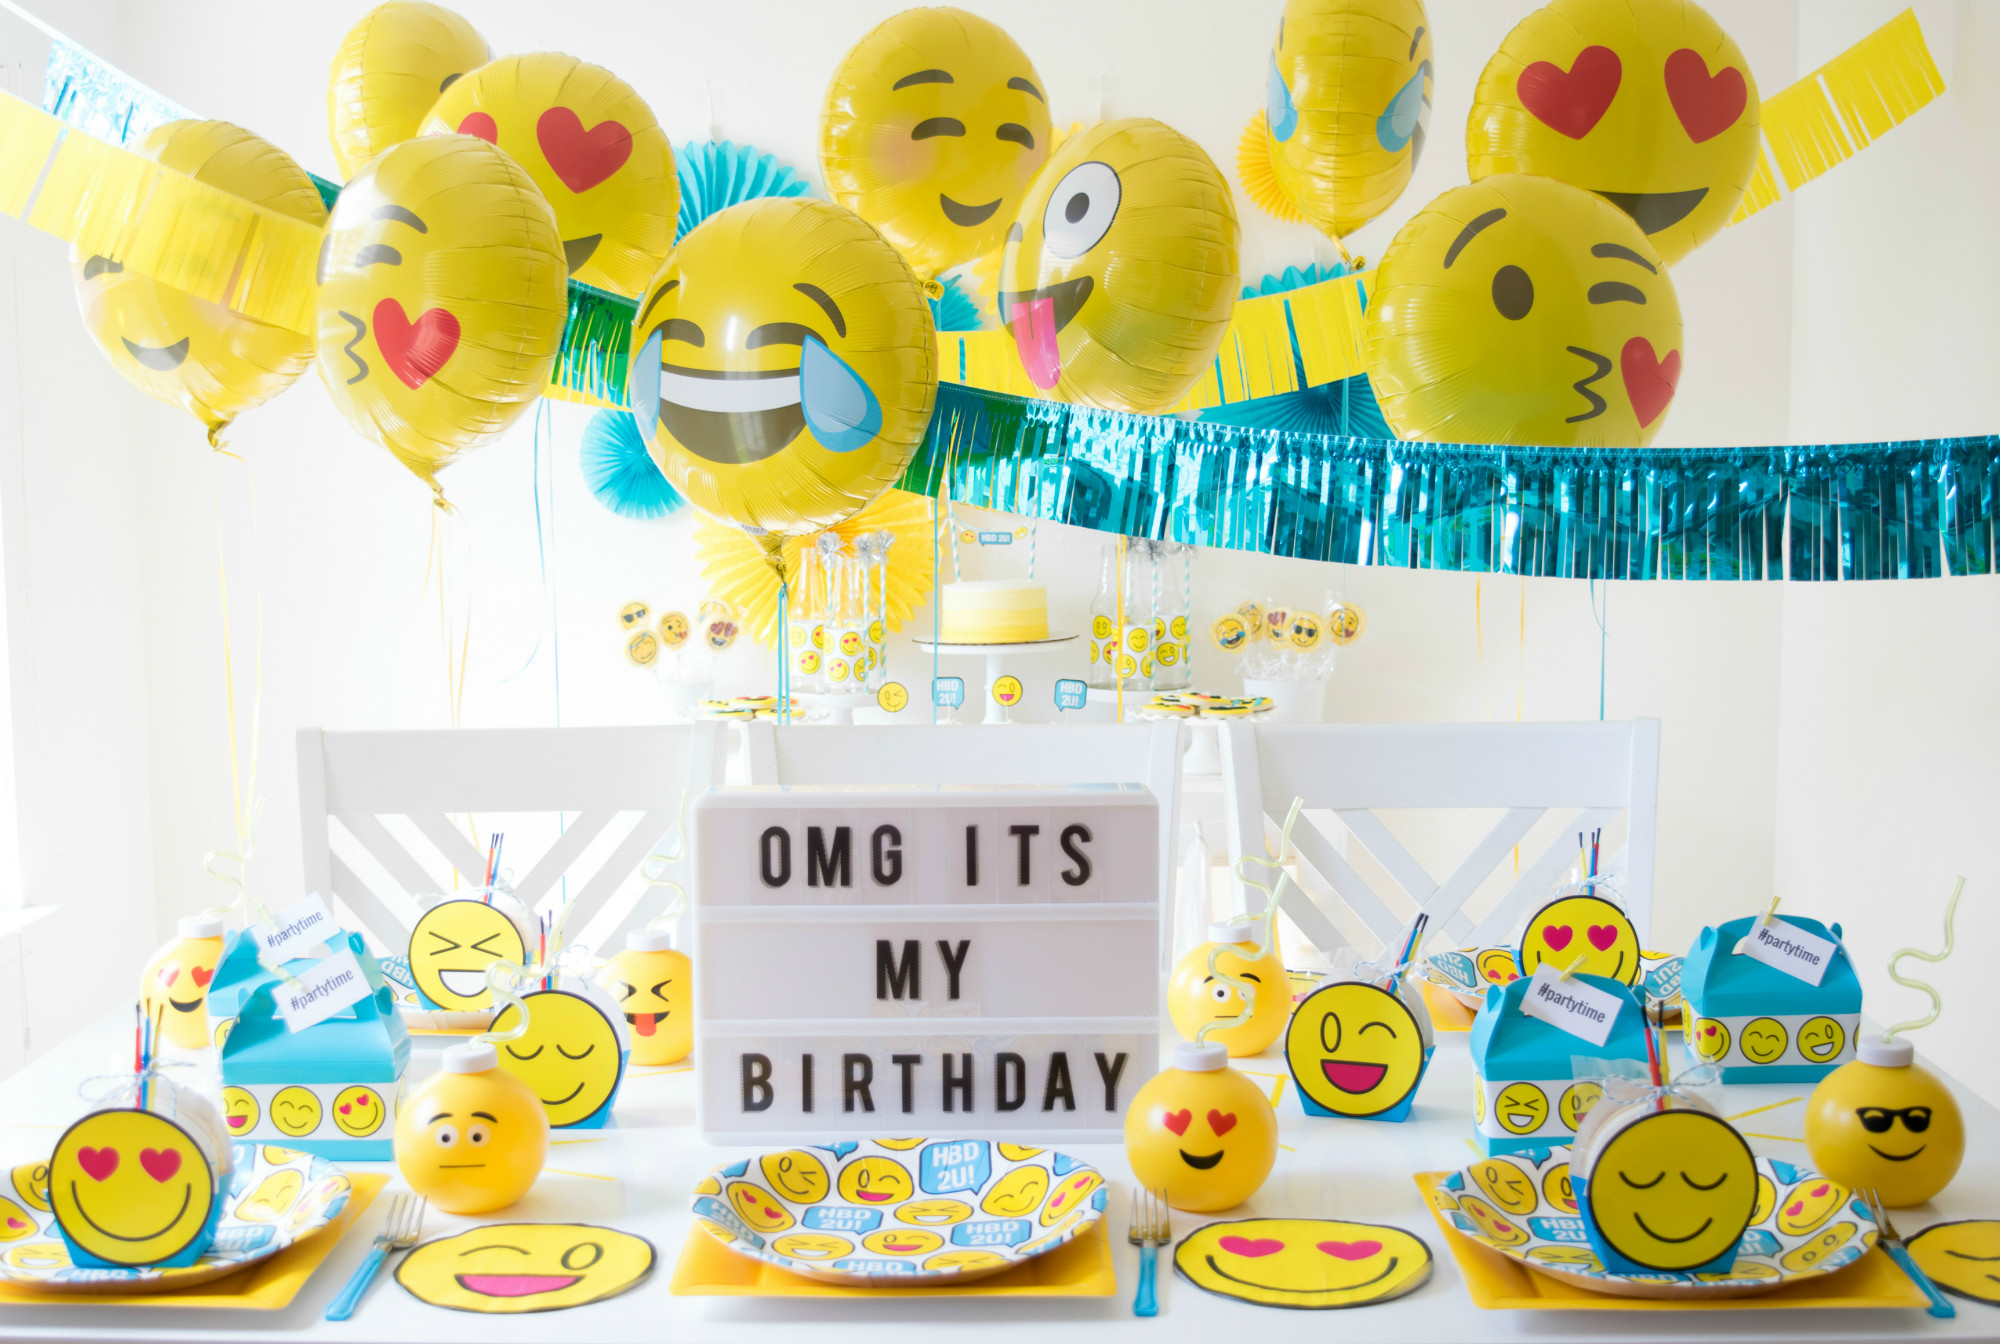 Tablescape And Balloons From Emoji Birthday Party